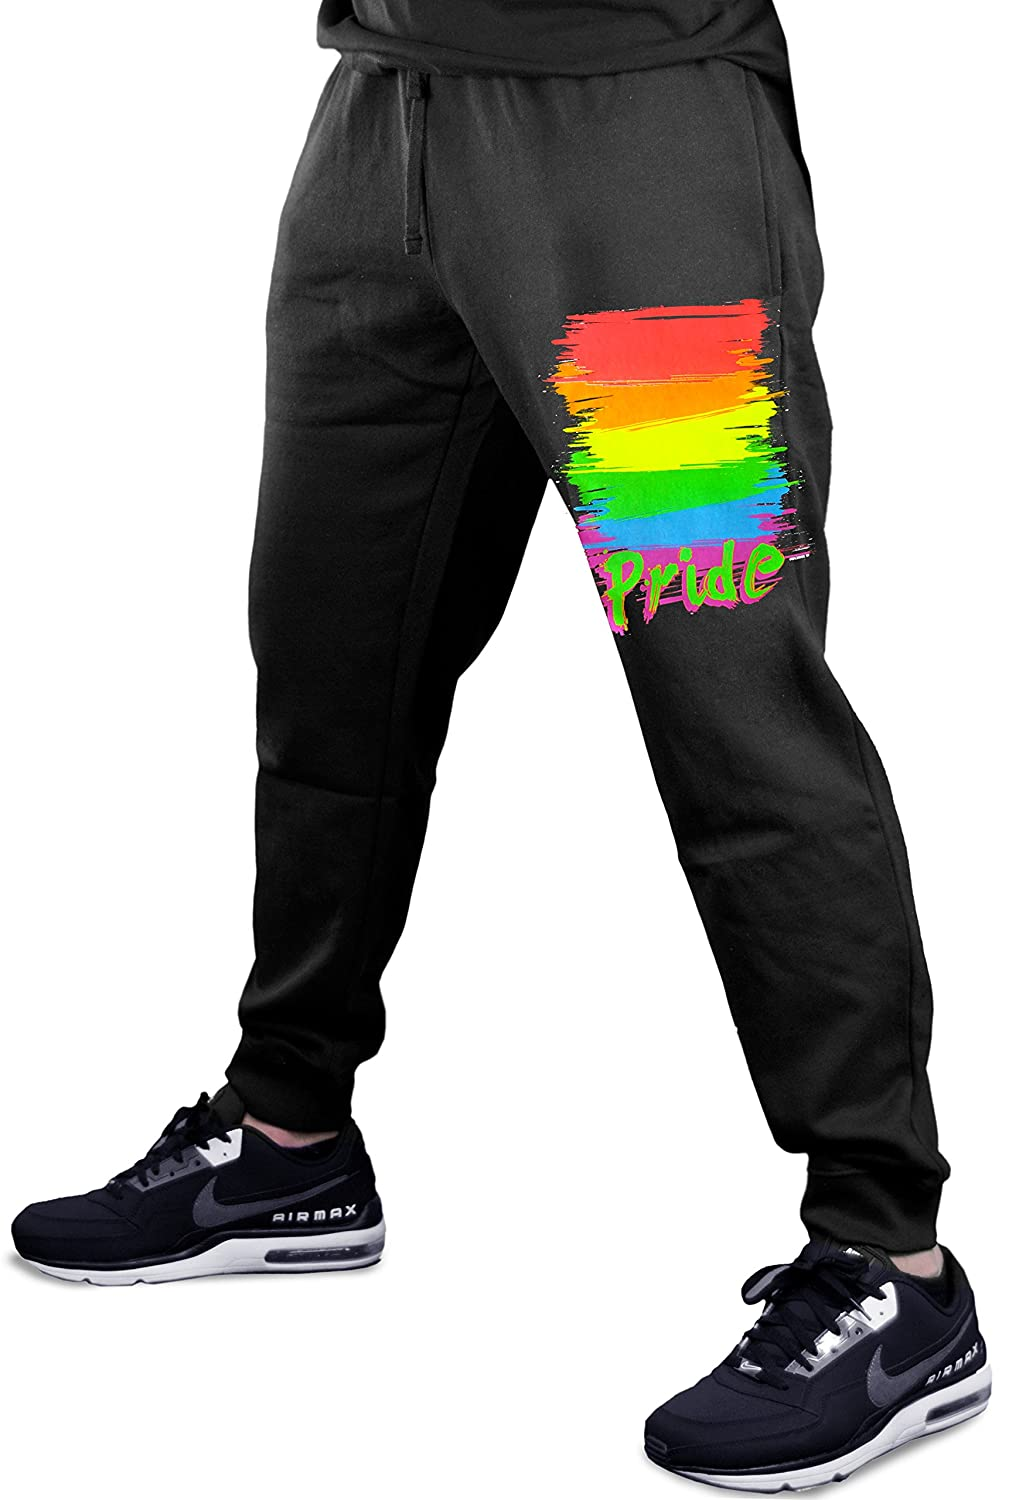 66920b5fb3 Top5: Interstate Apparel Inc Gay Pride Rainbow Men's Jogger Training Black  Pants Running Fitted